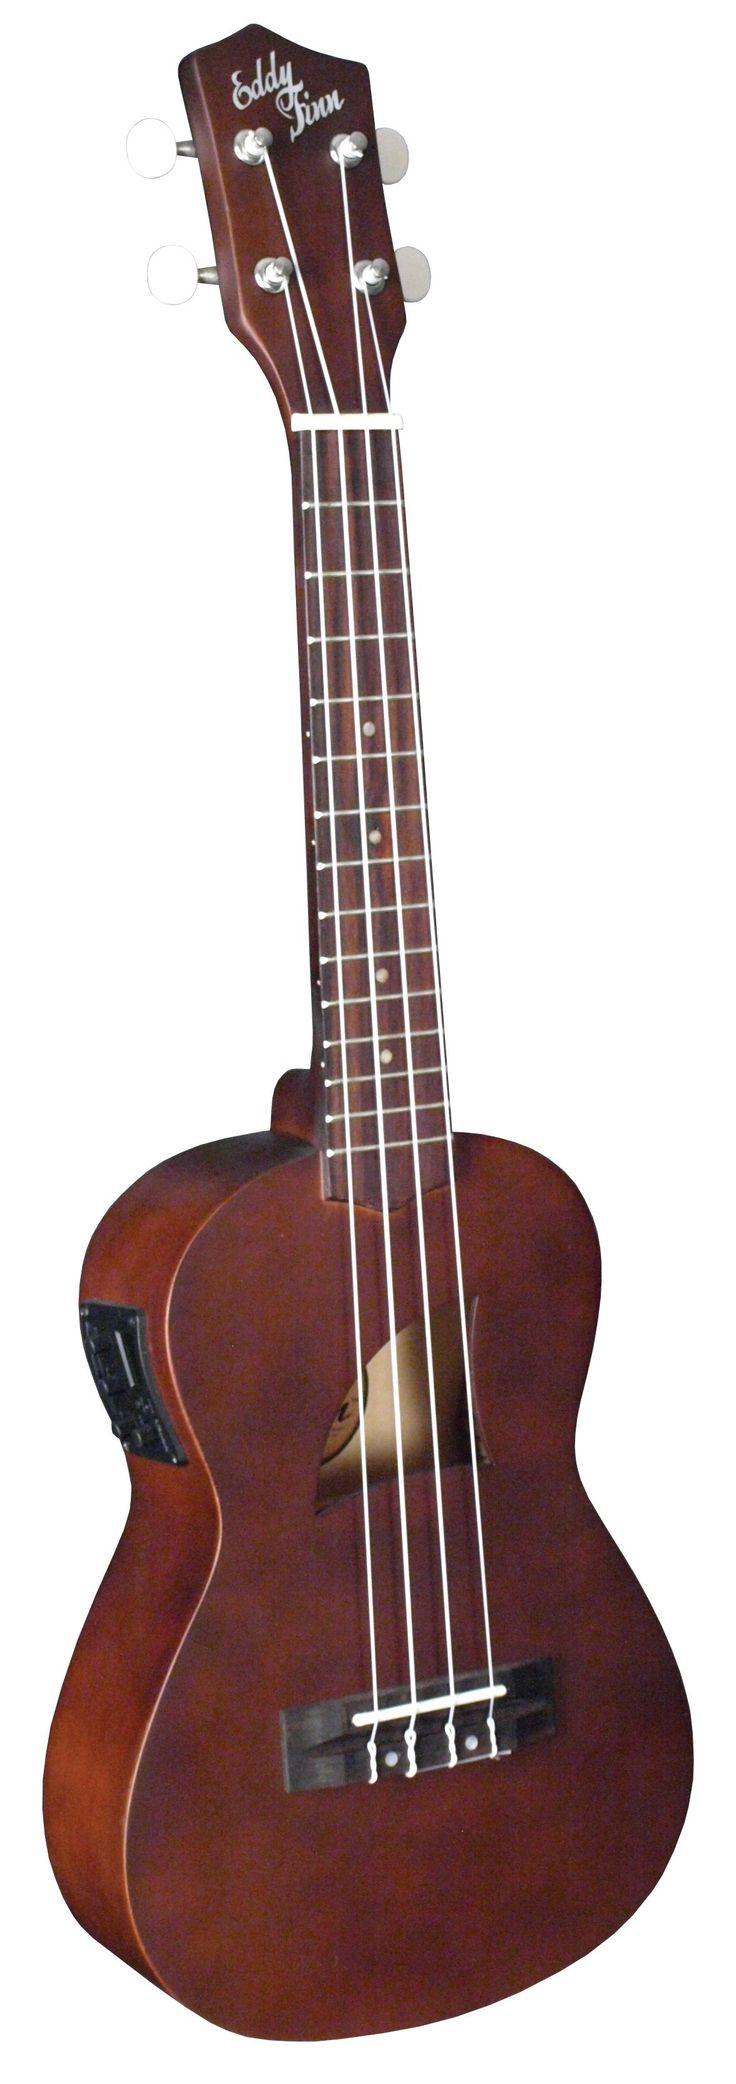 Eddy Finn® Basswood Series Acoustic/Electric Concert Ukulele with Aquila Strings